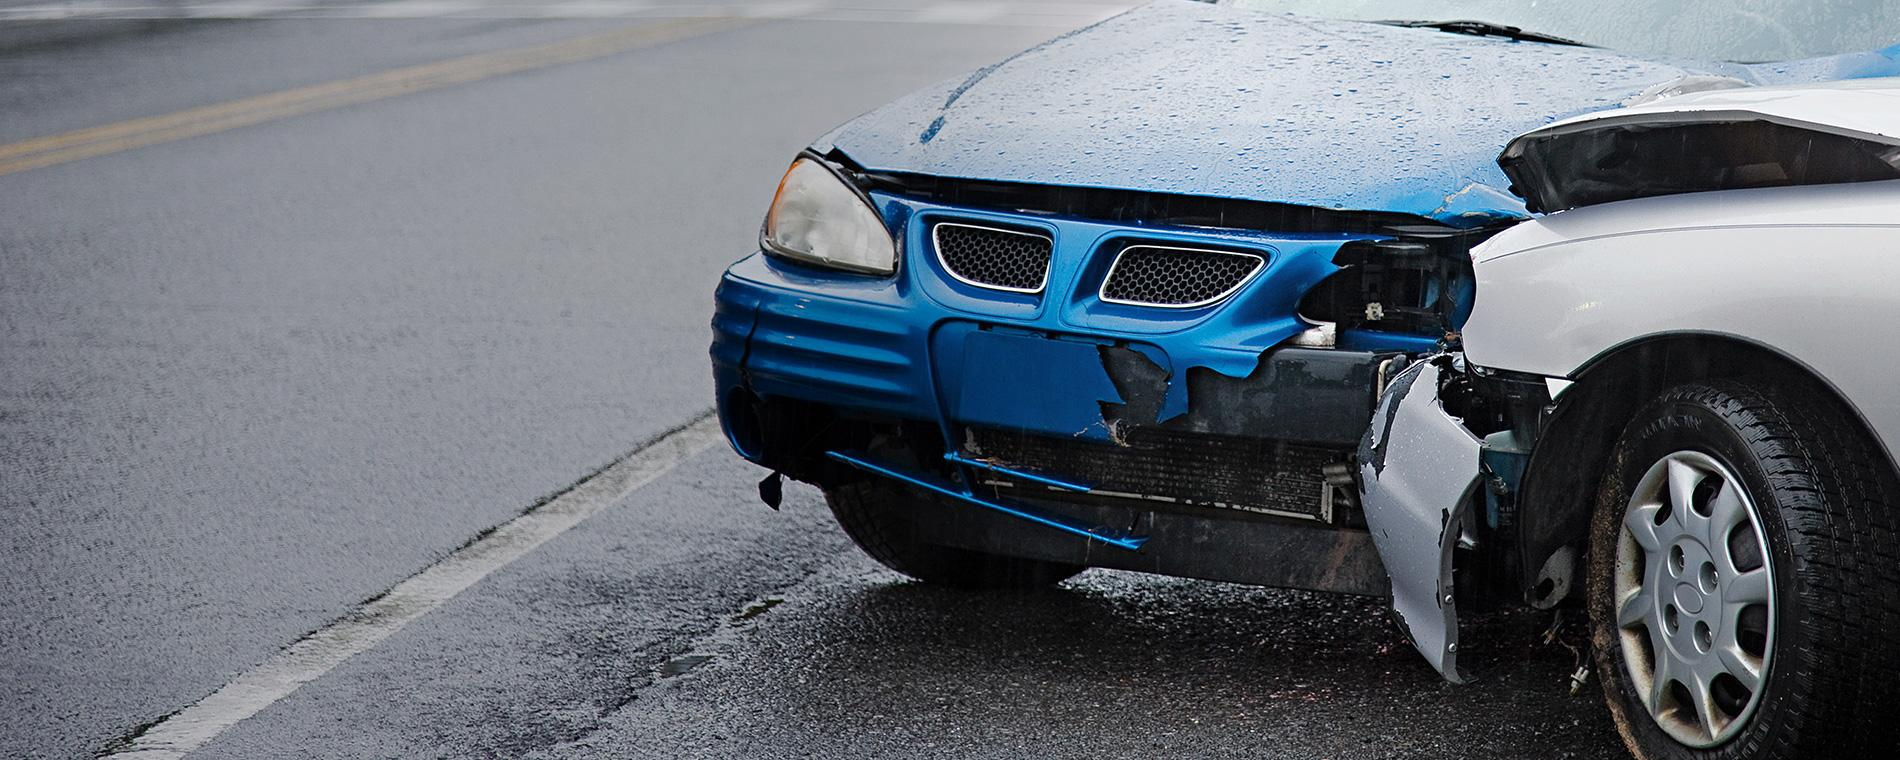 Damaged car with great auto insurance coverage